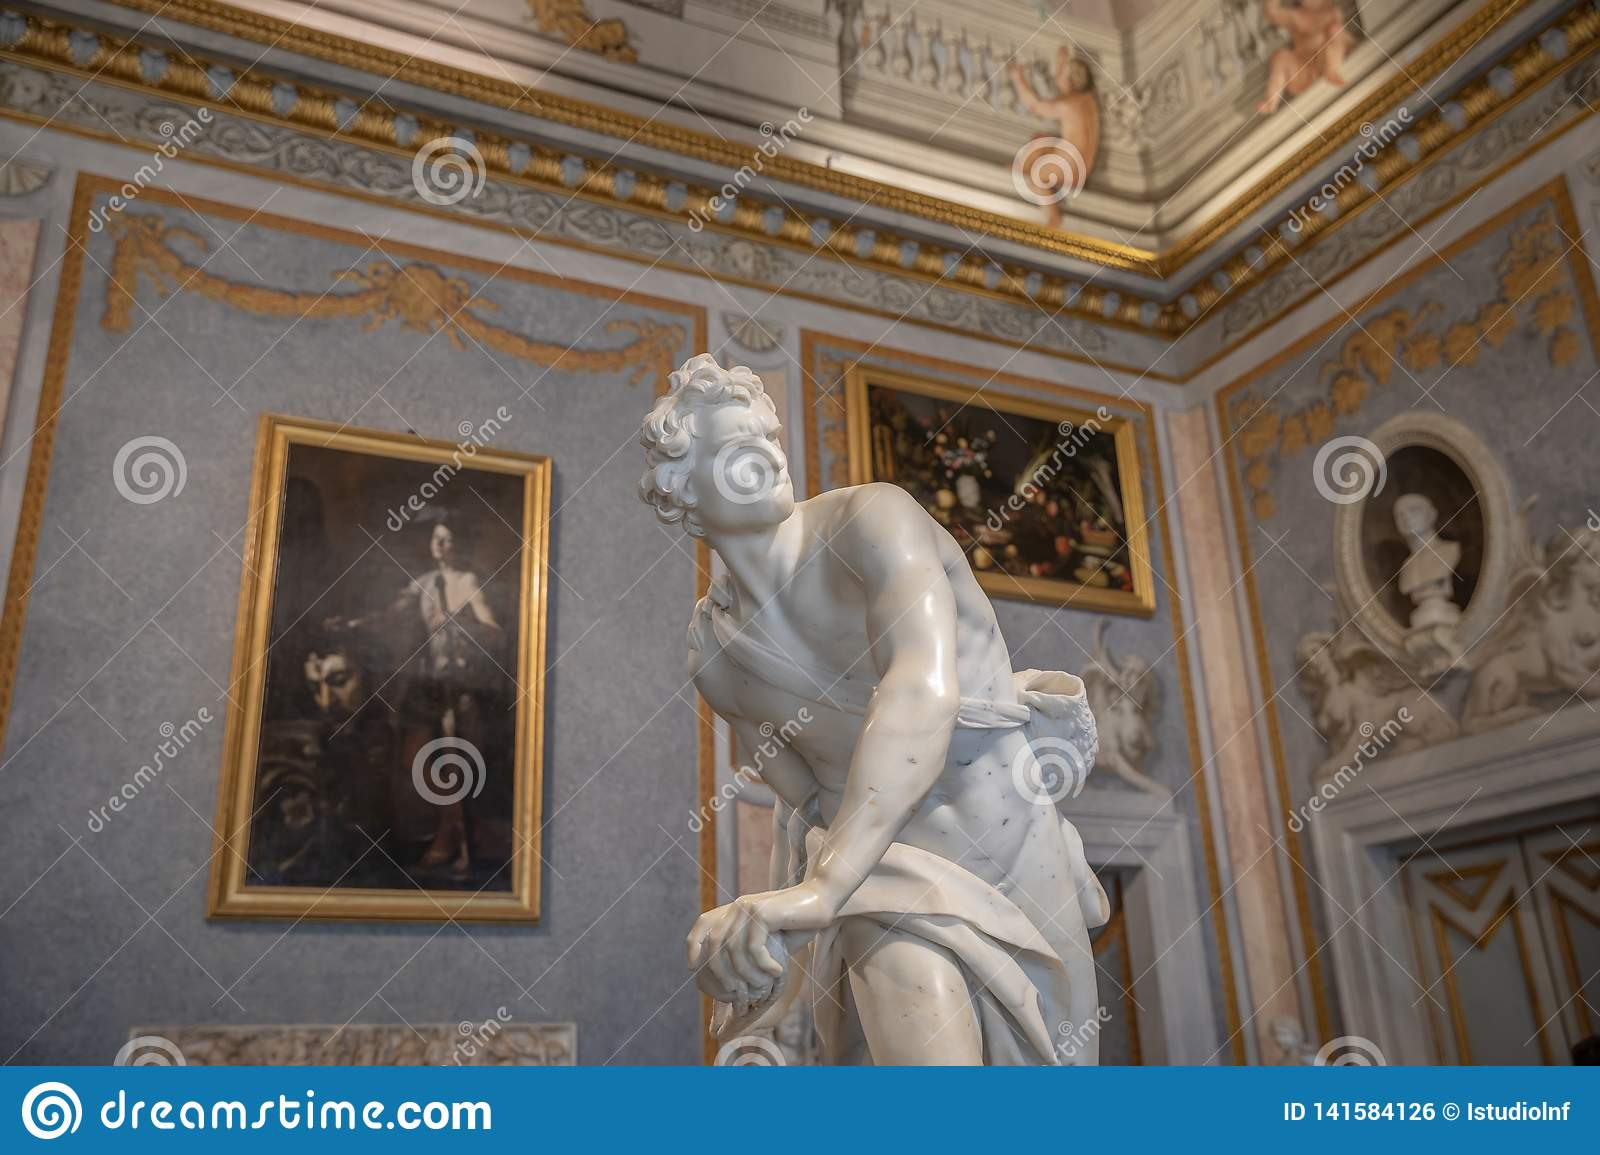 Baroque marble sculpture David by Bernini 1623-1624 in Galleria Borghese